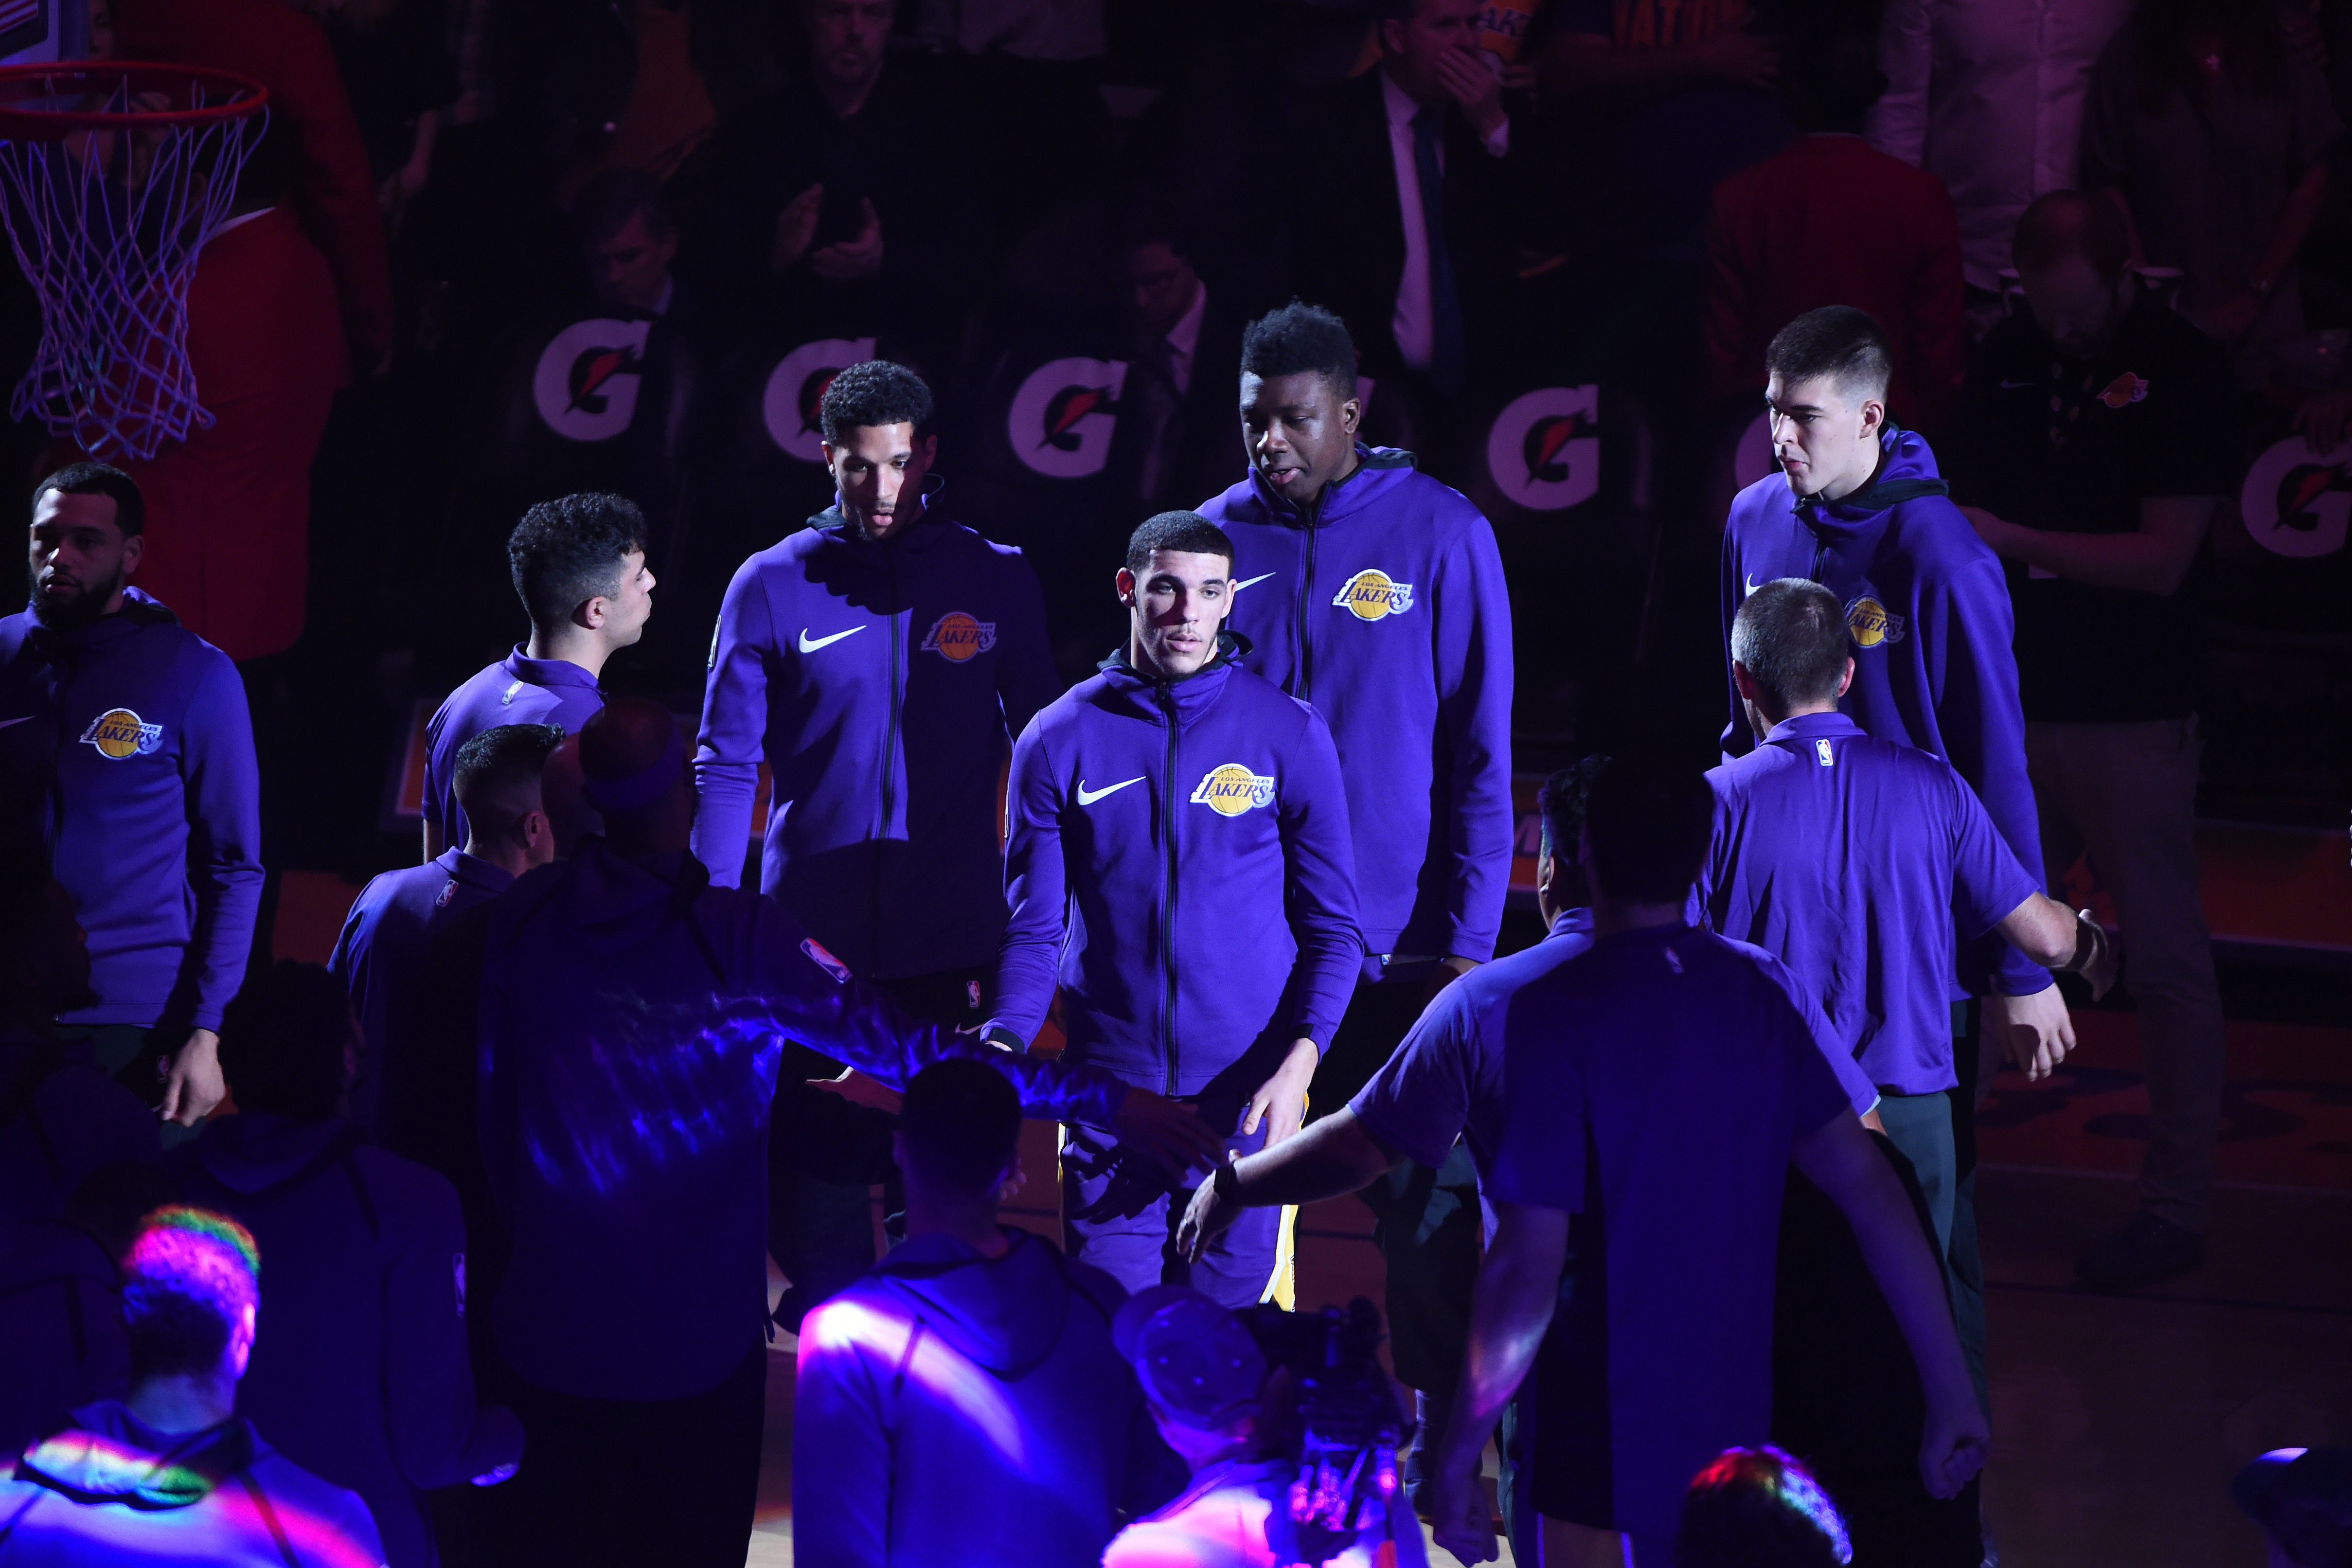 Ingram's game-winner lifts Lakers past Sixers